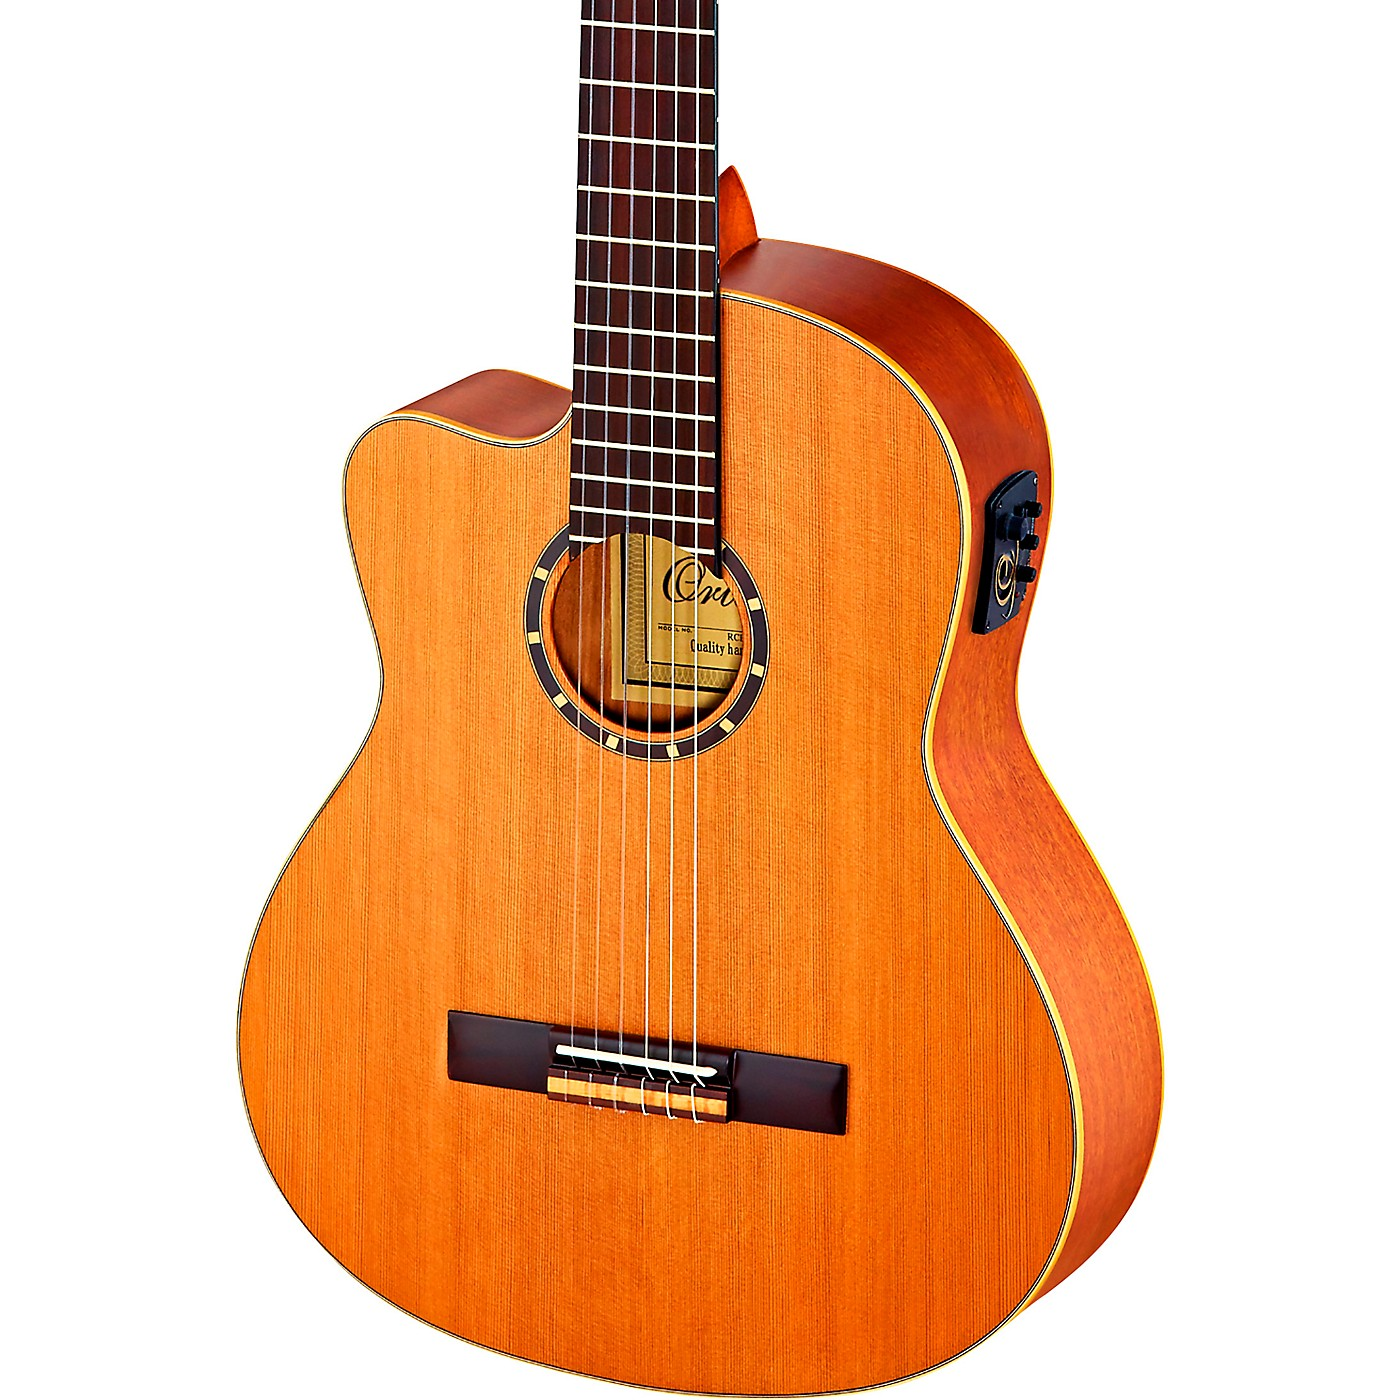 Ortega Family Series Pro RCE131 Acoustic-Electric Left-Handed Classical Guitar thumbnail